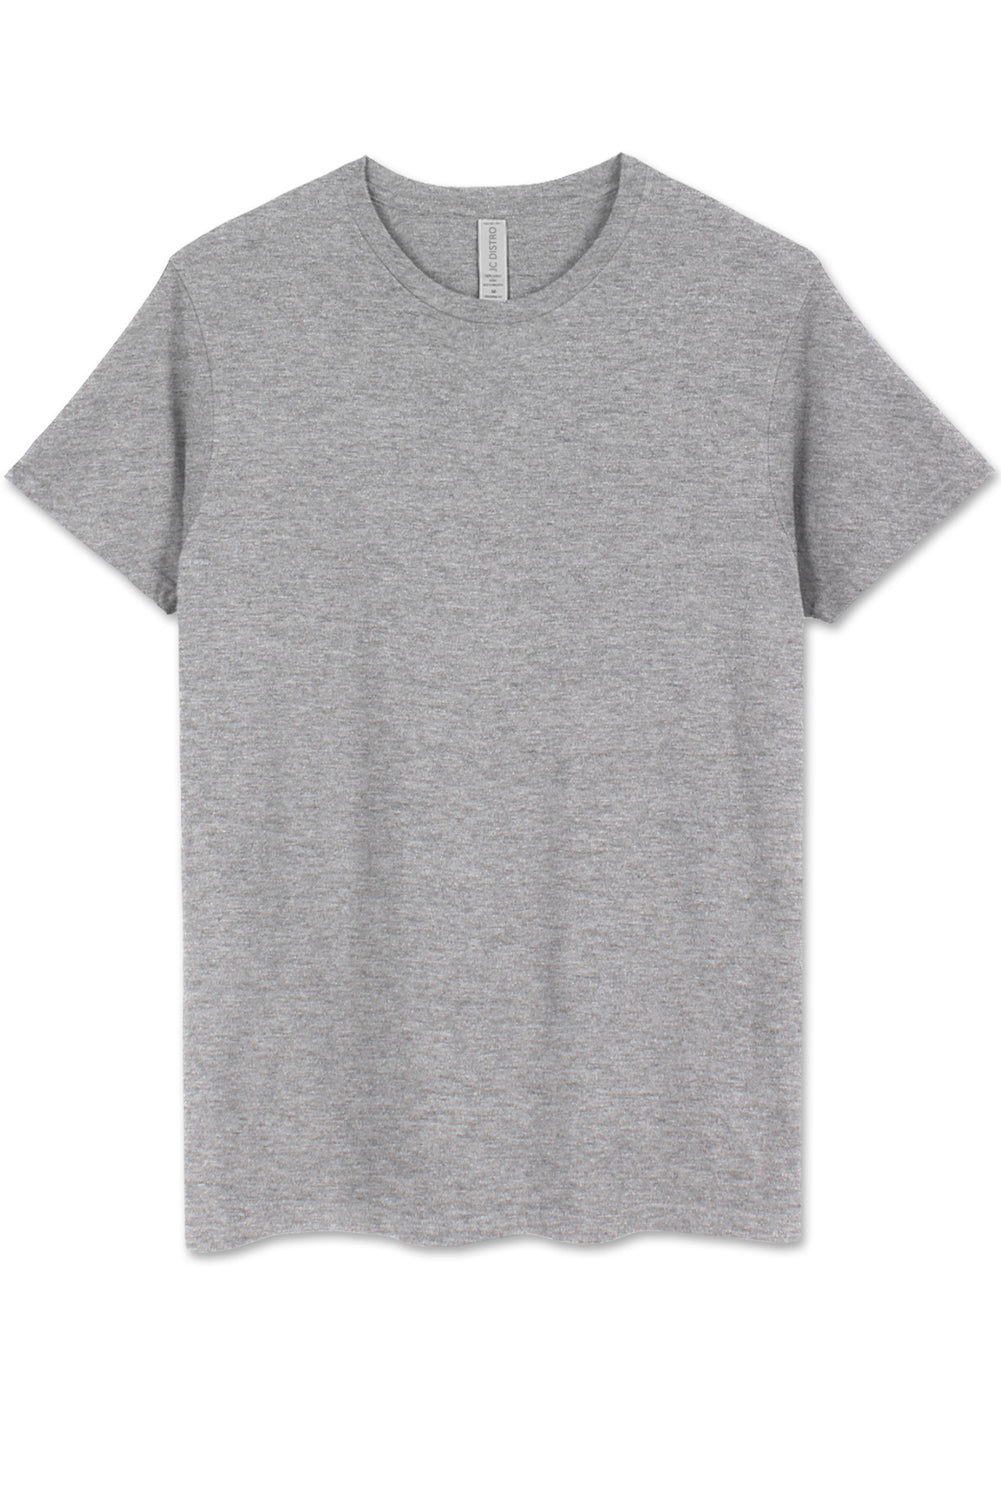 Crewneck T-Shirt Heather Soft-wash